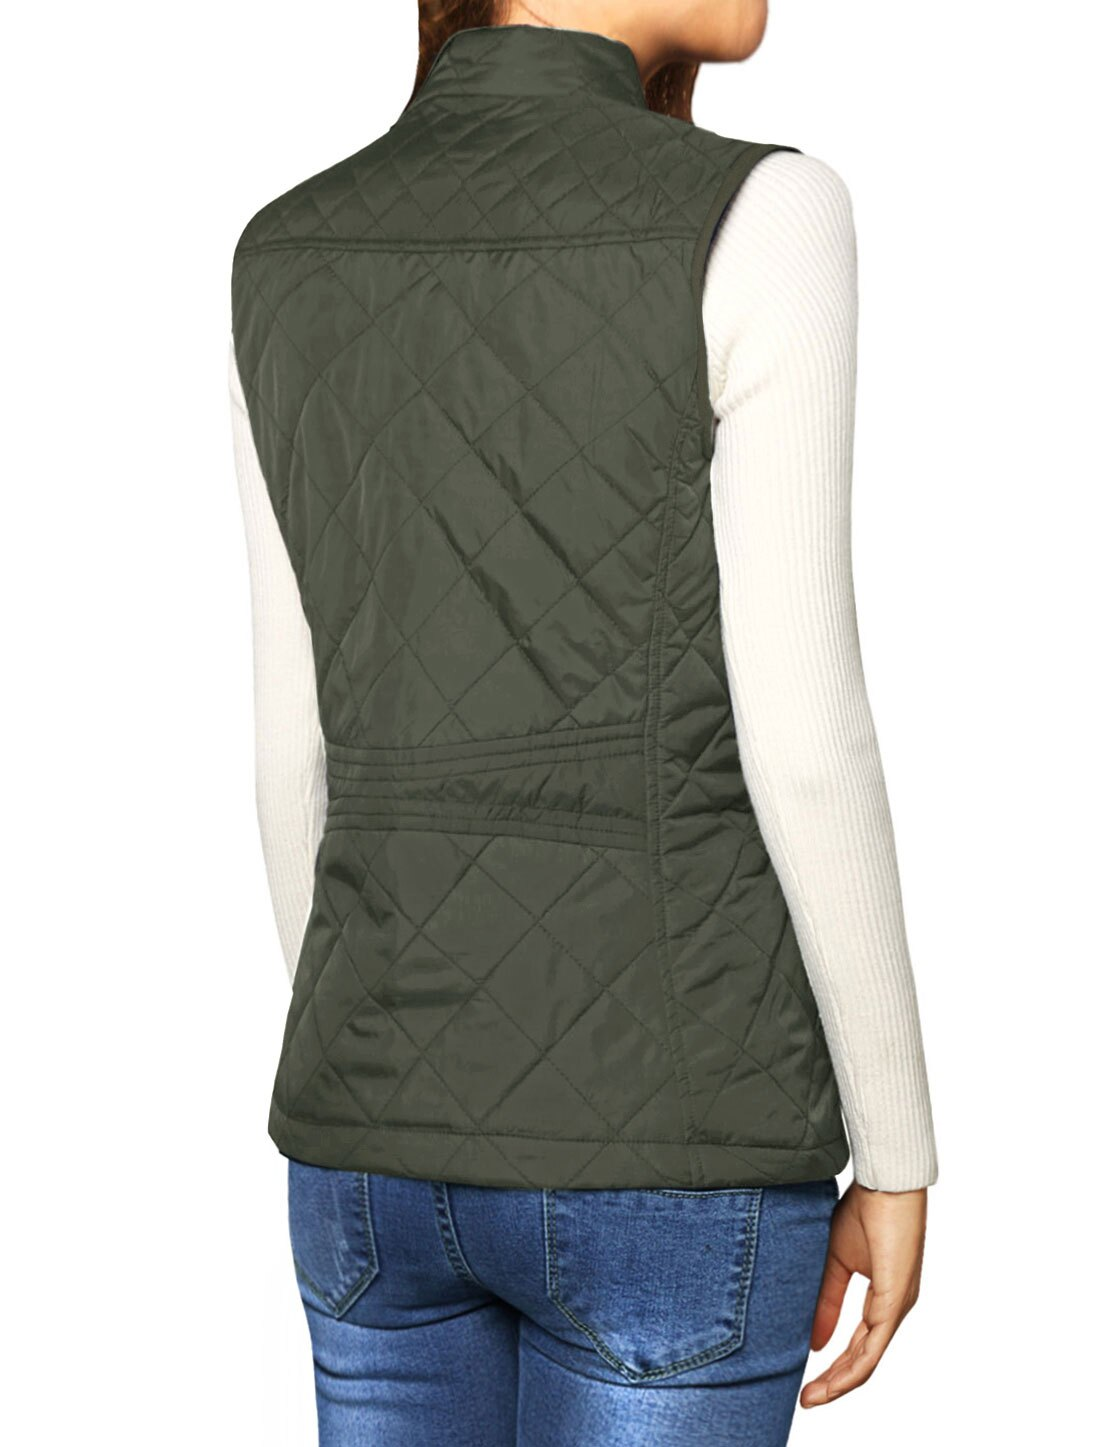 products quilt alpaca black yellow vpac model performance quilted vest green choice